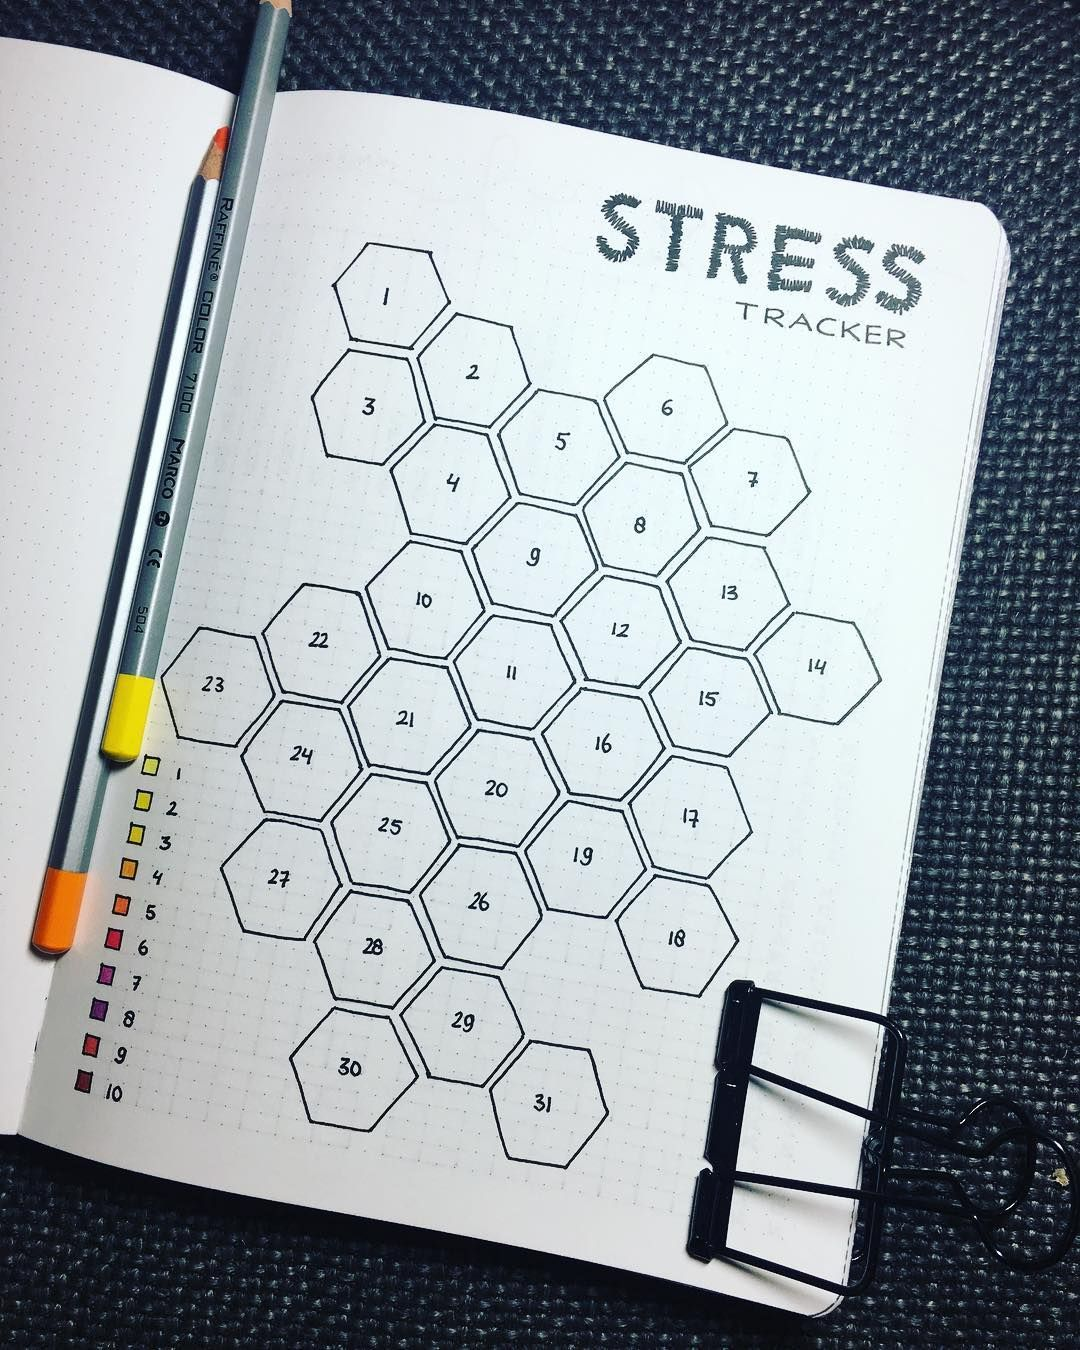 "@ragnasrealm shared a photo on Instagram: ""January stress tracker - I'm aiming for sunny colors 😄  #bulletjournal #bulletjournals #bulletjournalcommunity #bulletjournaling #bujo…"" • Jan 2, 2018 at 7:04pm UTC"